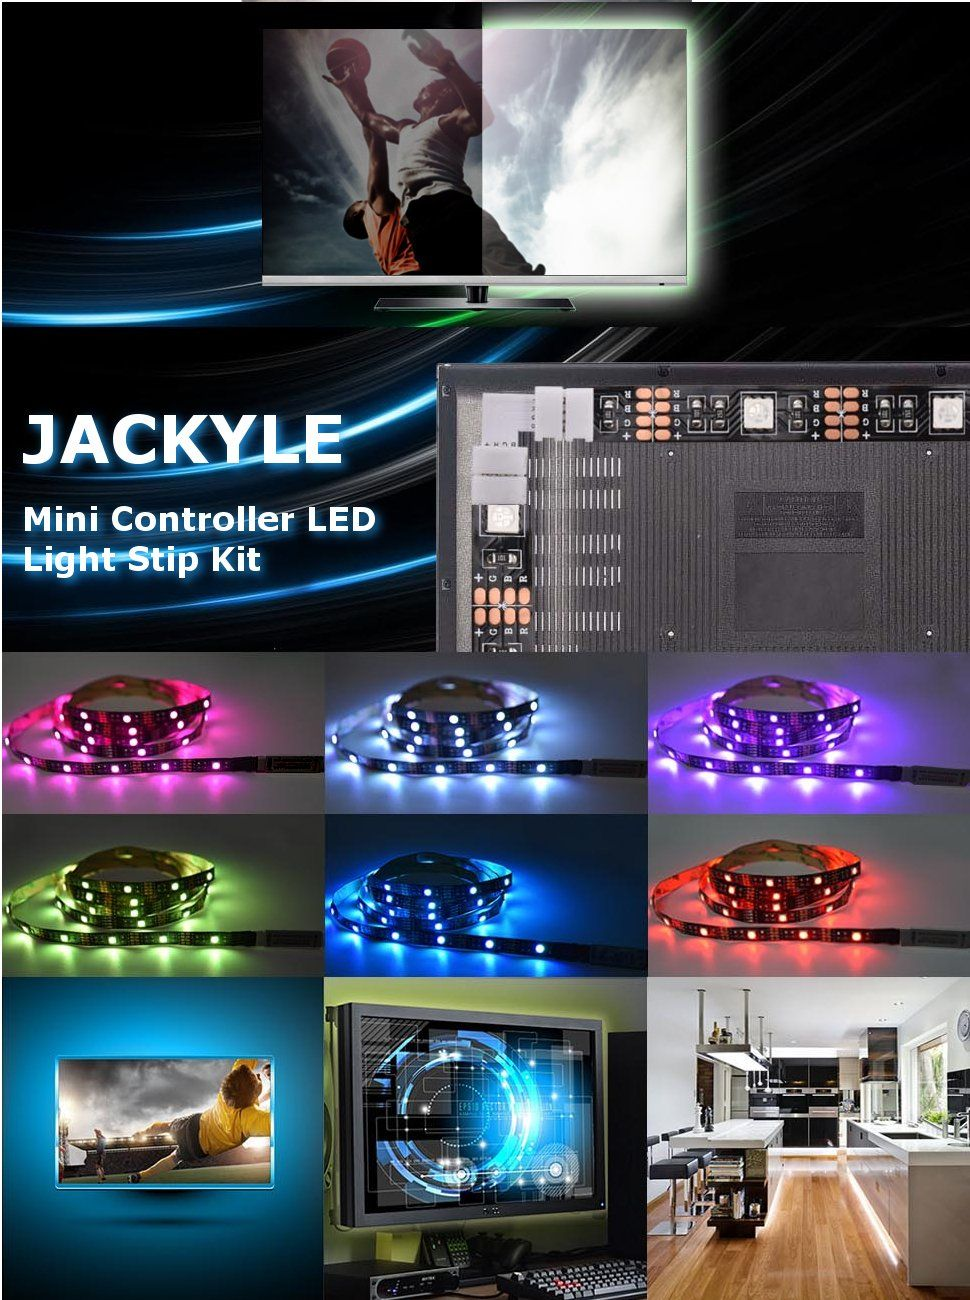 Tv led light strip jackyled 66ft 60leds led tv backlight strip usb tv led light strip jackyled 66ft 60leds led tv backlight strip usb bias monitor lighting aloadofball